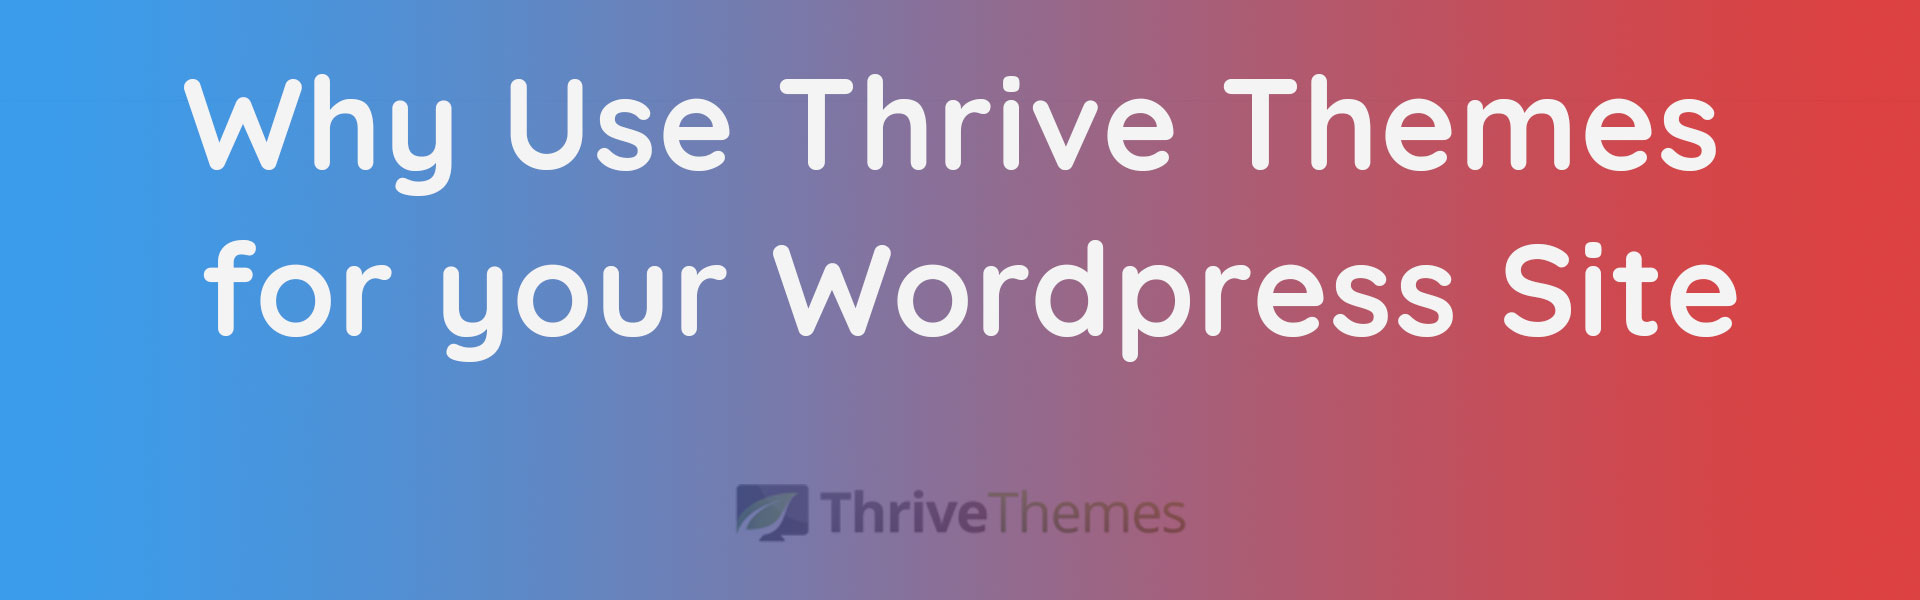 Thrive Themes Auction